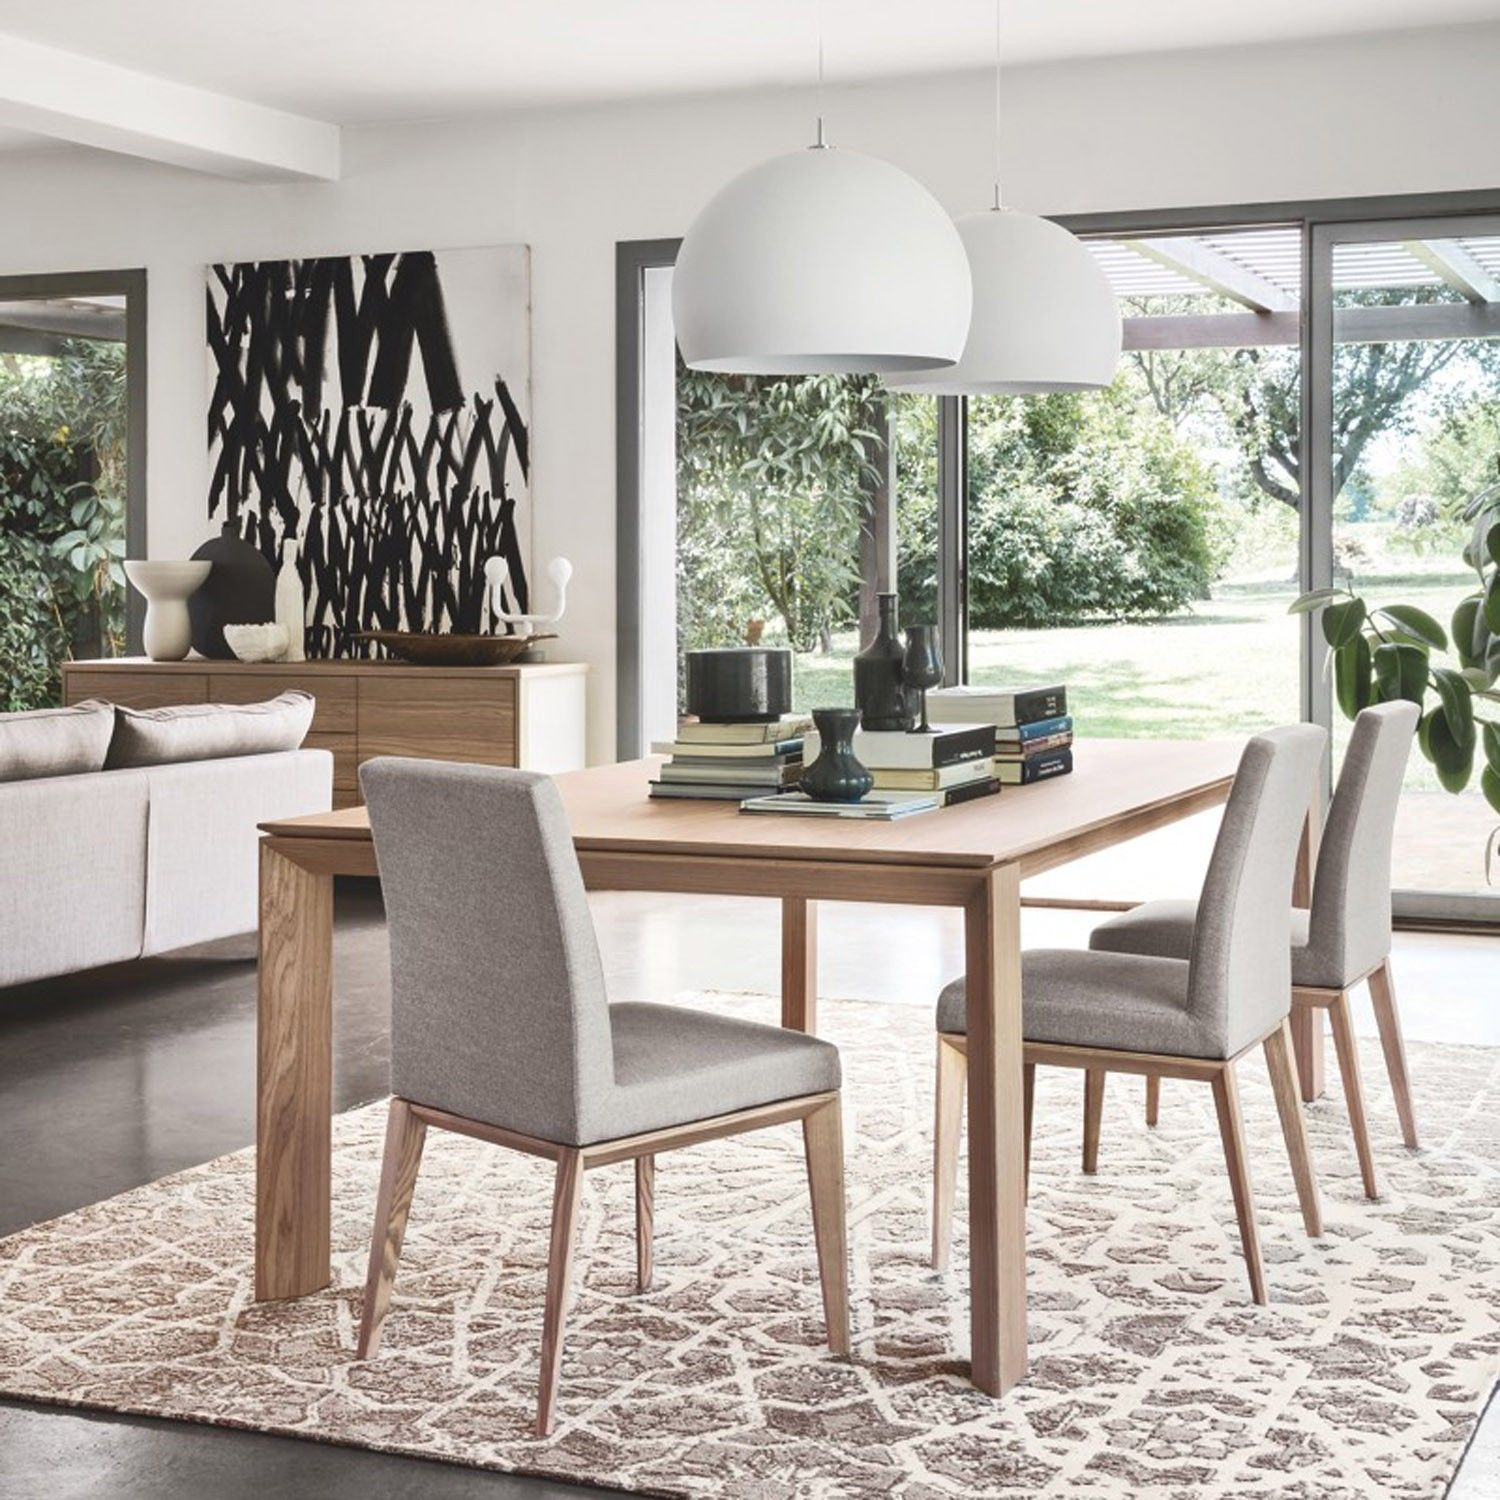 Bess low chair by calligaris yliving wooden dining table designs